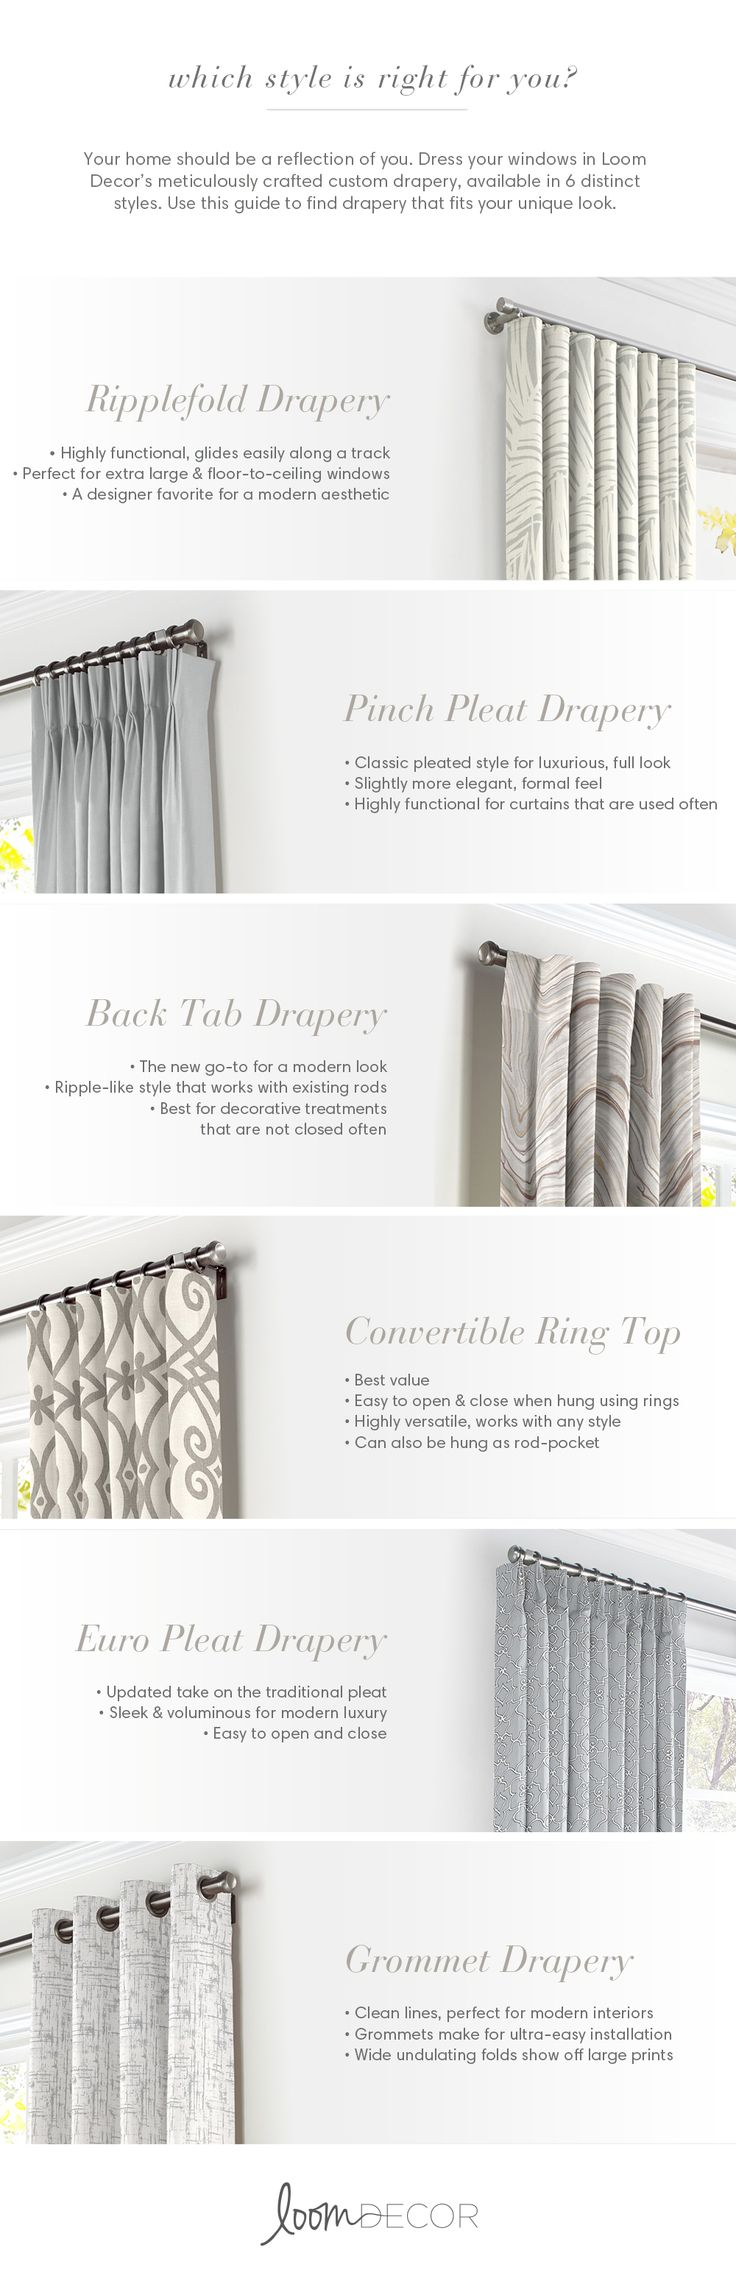 Best 25+ Curtain Ideas Ideas On Pinterest | Window Curtains, Living Room  Curtains And Curtains